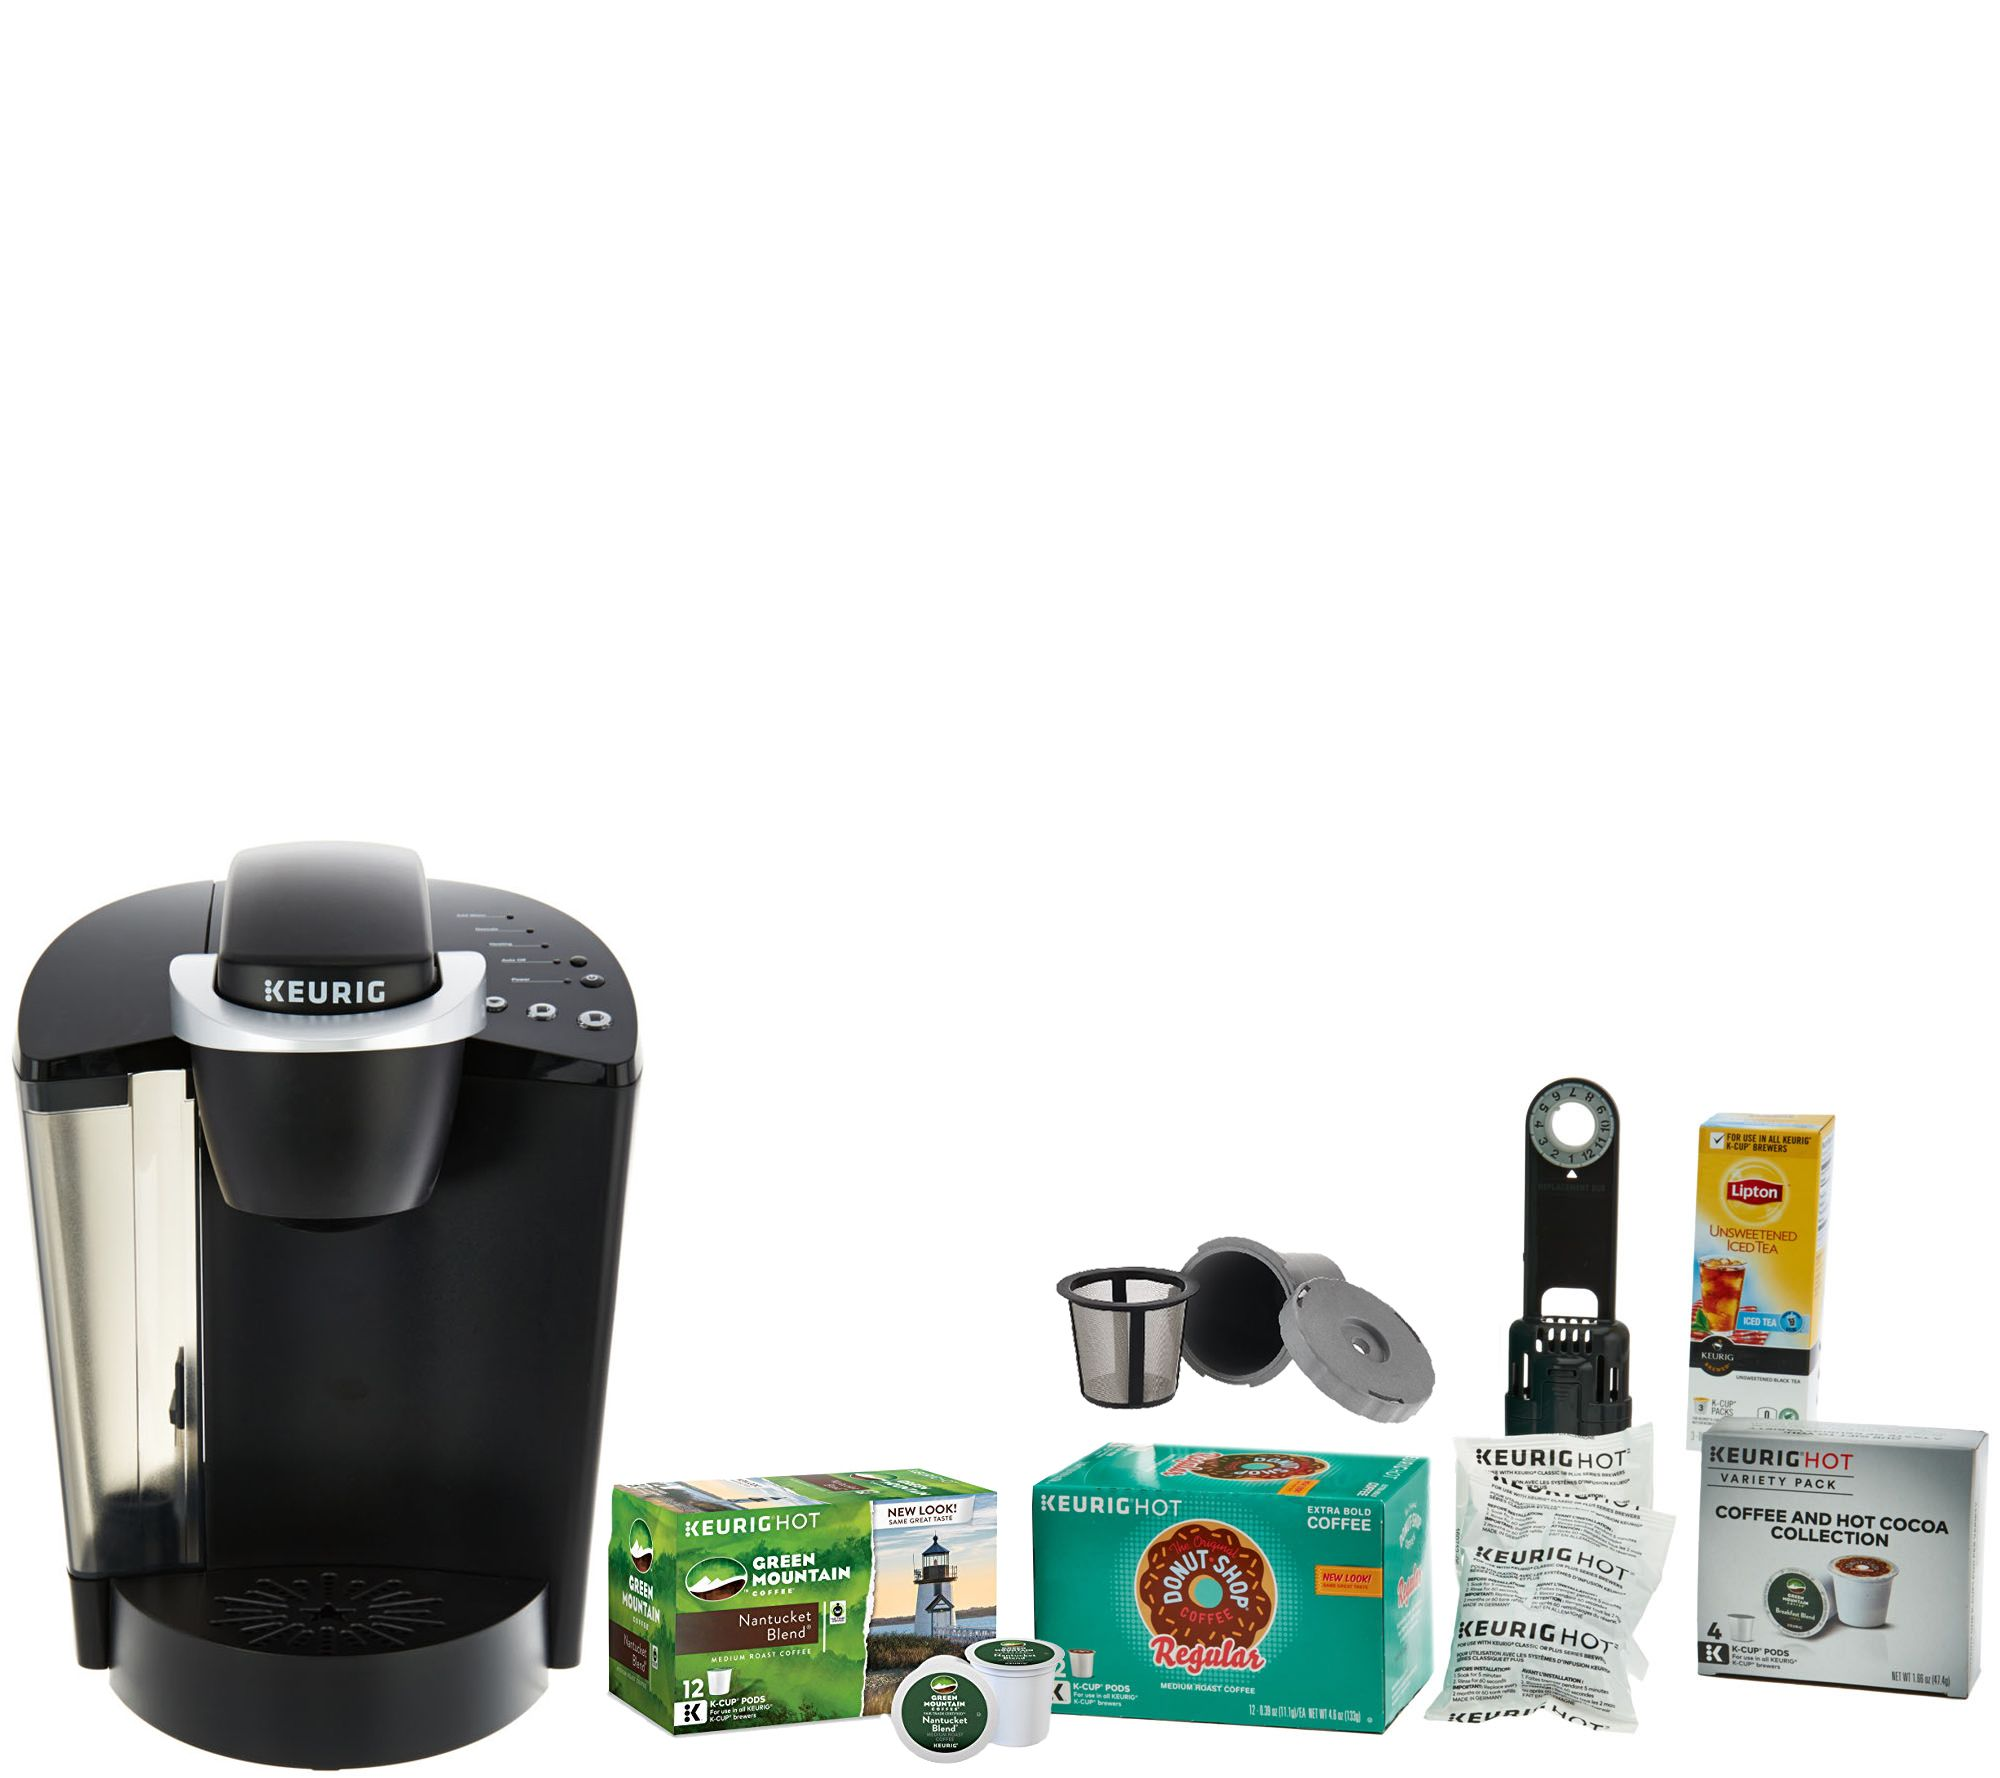 Coffee Maker For Pods : Keurig K55 Coffee Maker with My K-Cup, 31 K-Cup Pods & Water Filters - Page 1 QVC.com